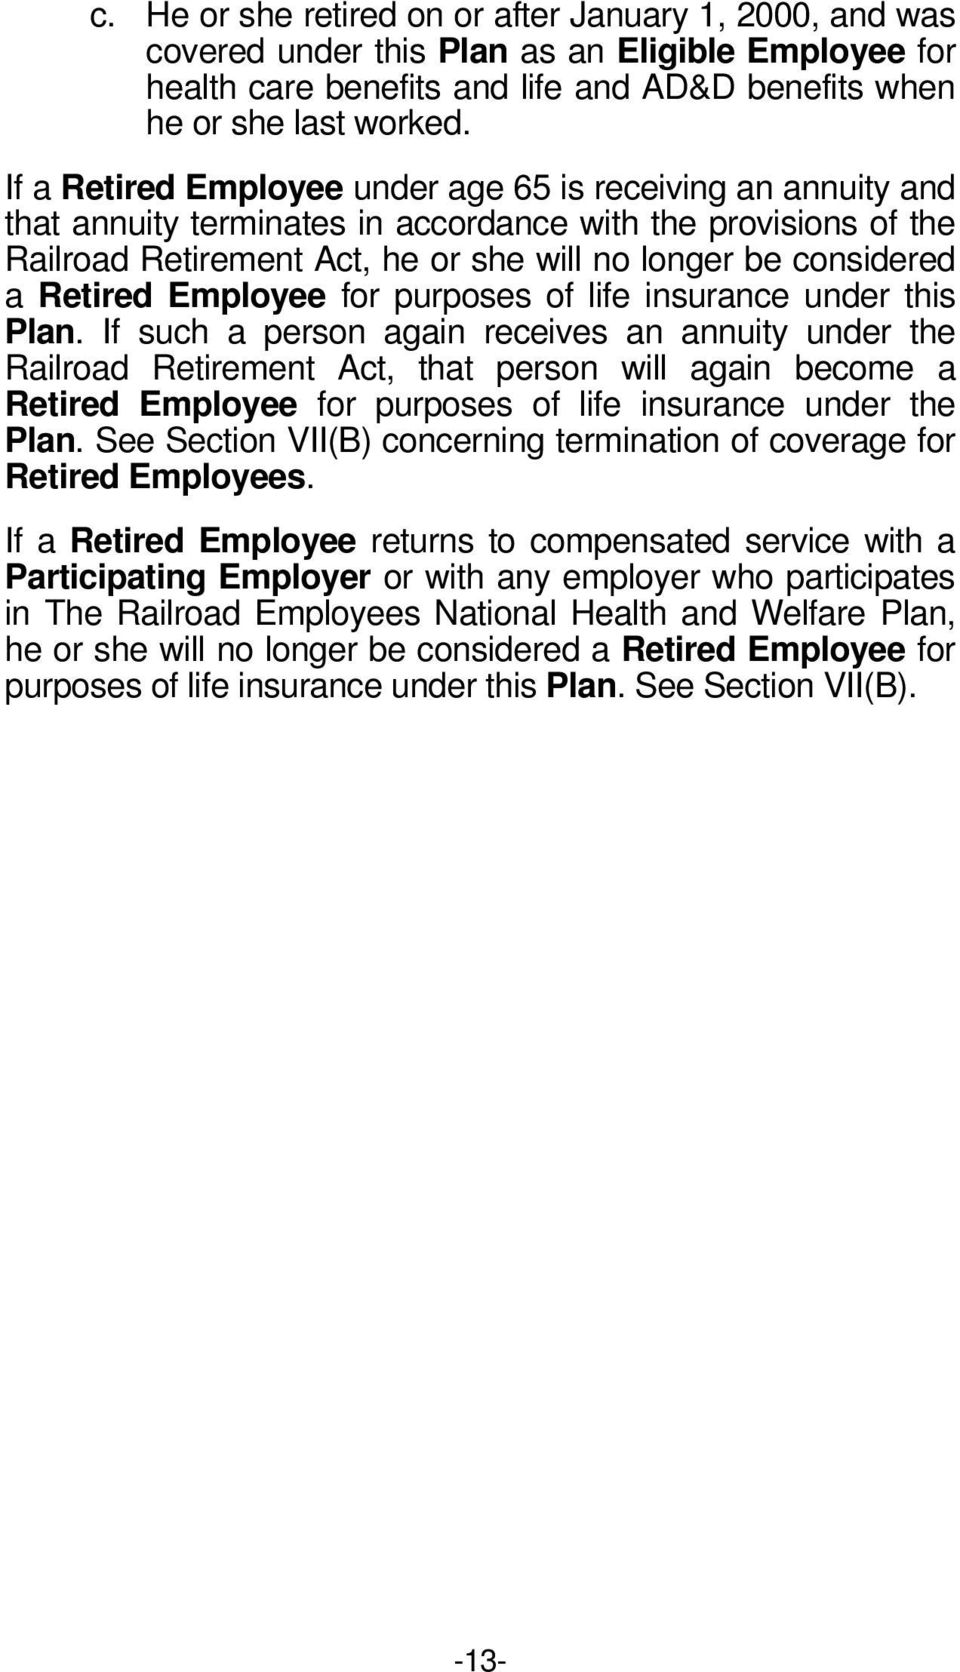 Retired Employee for purposes of life insurance under this Plan.